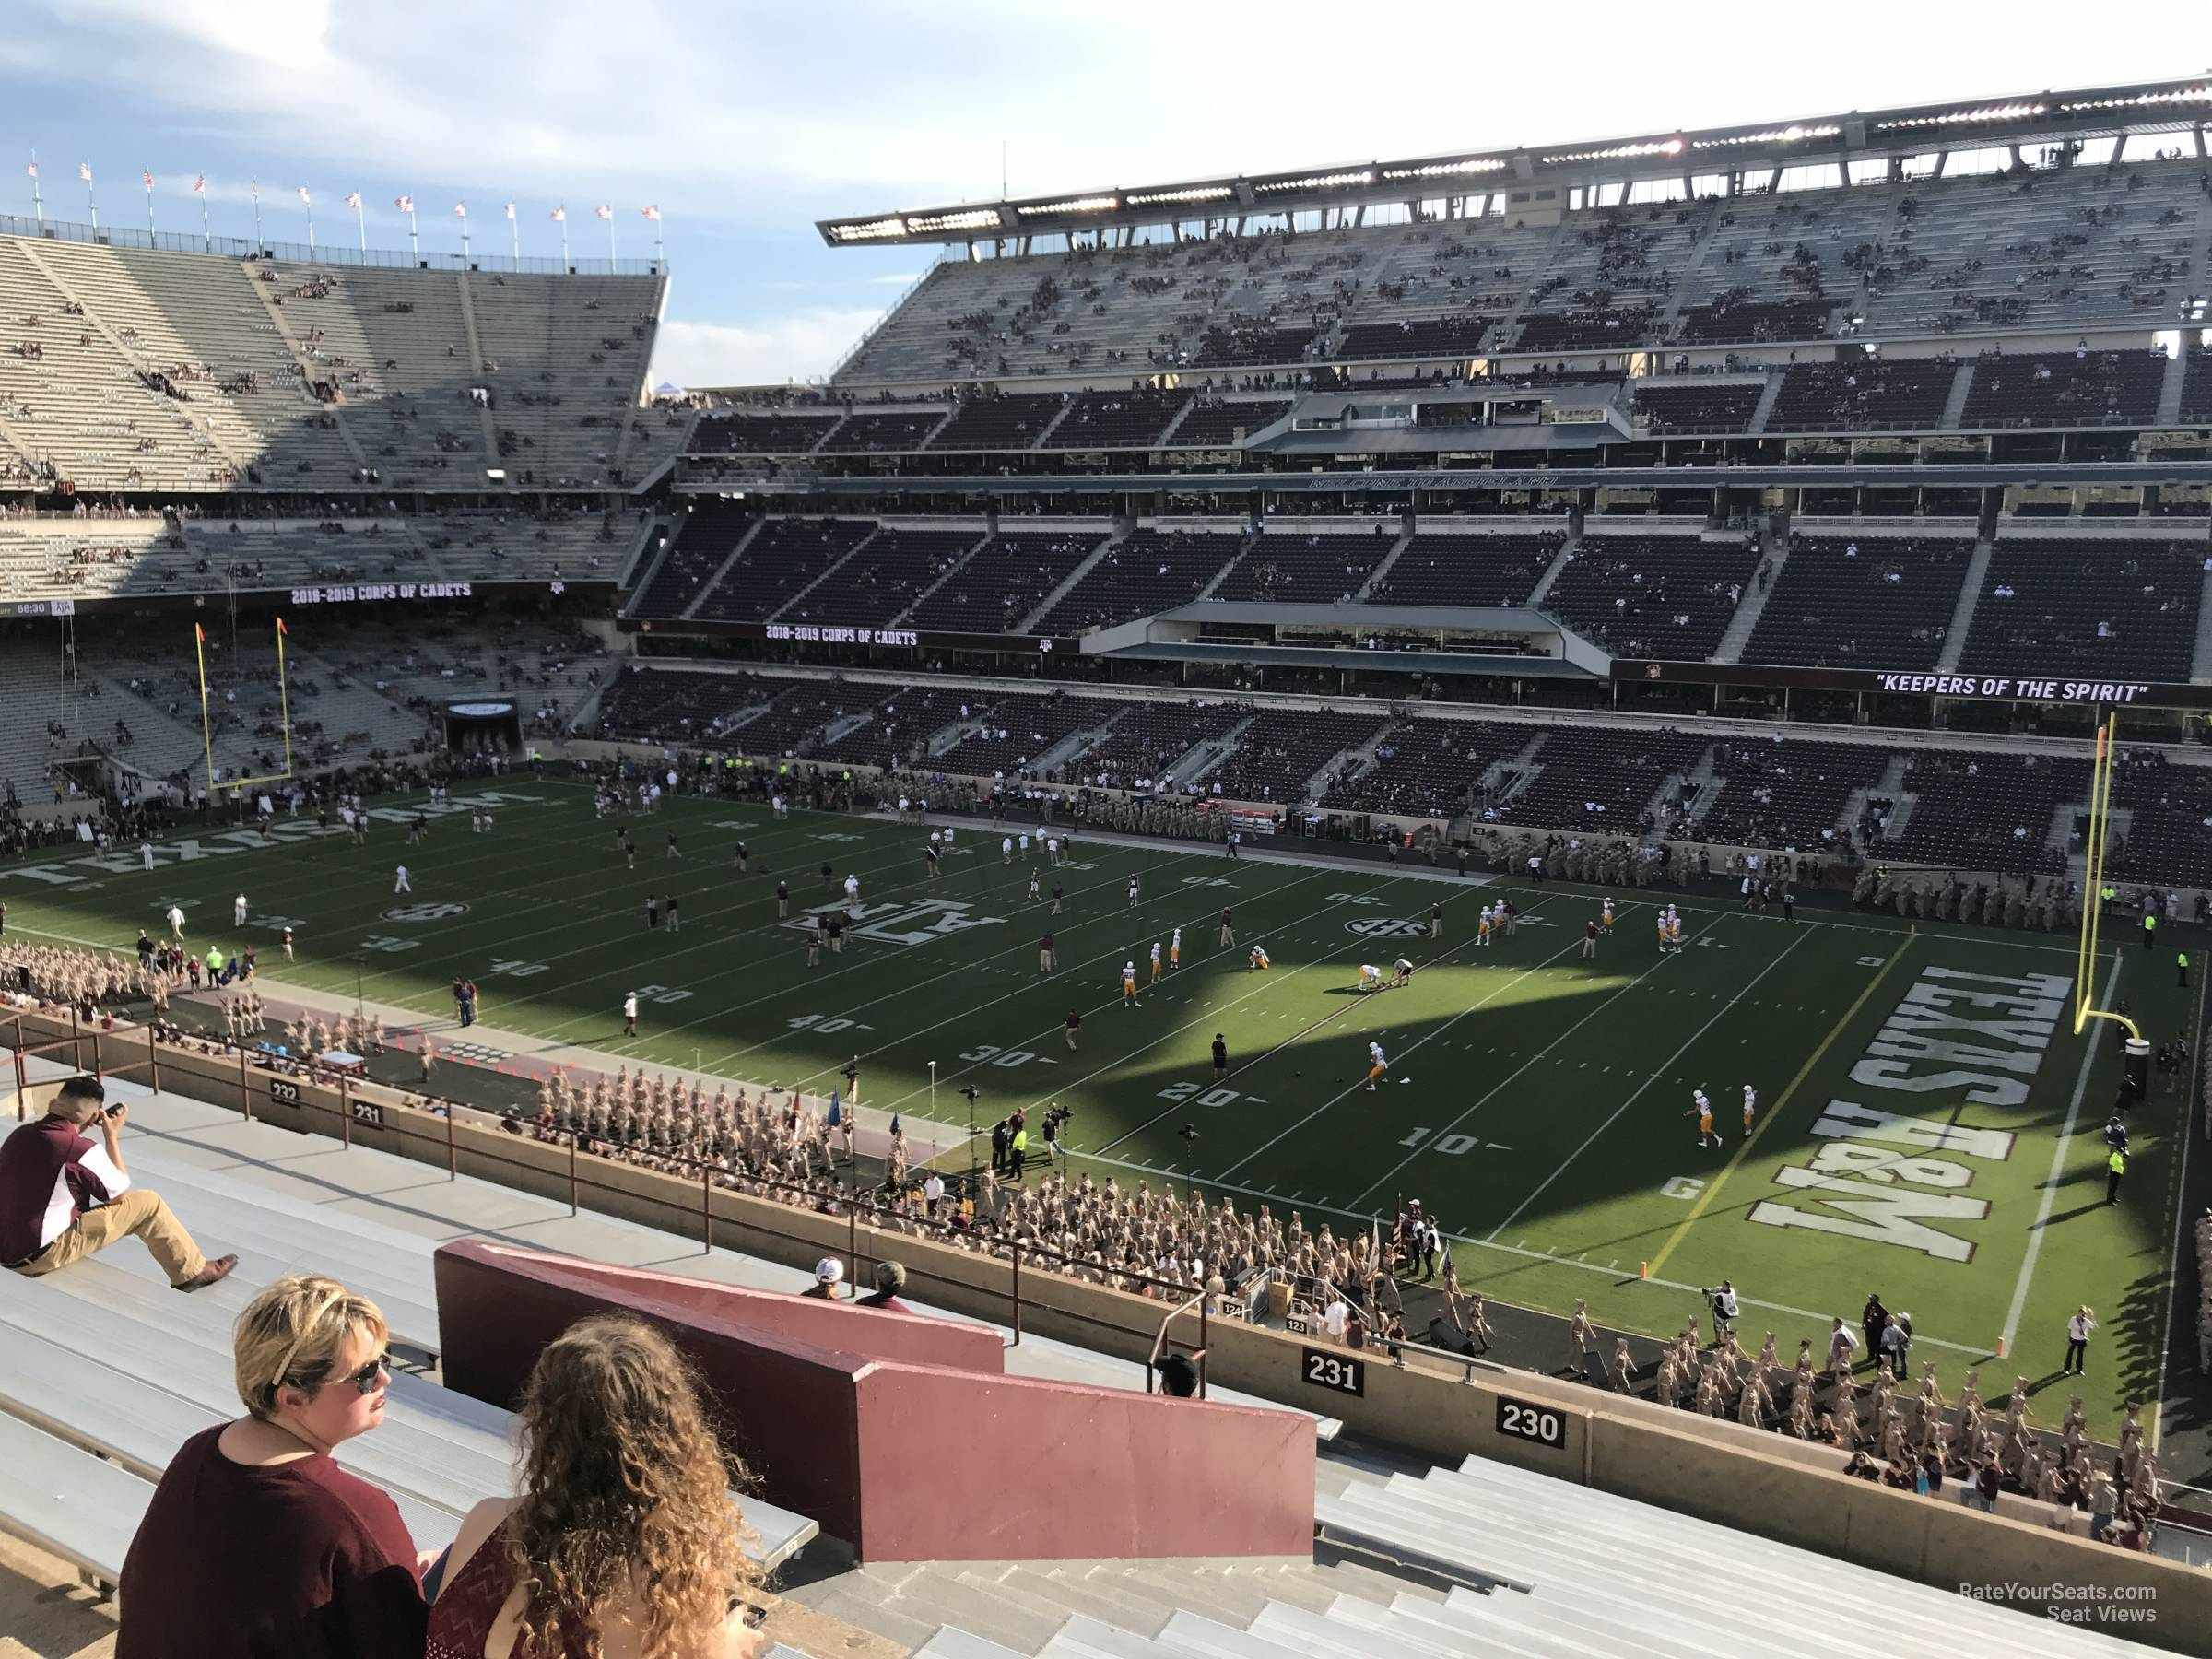 Seat View for Kyle Field Section 230, Row 20